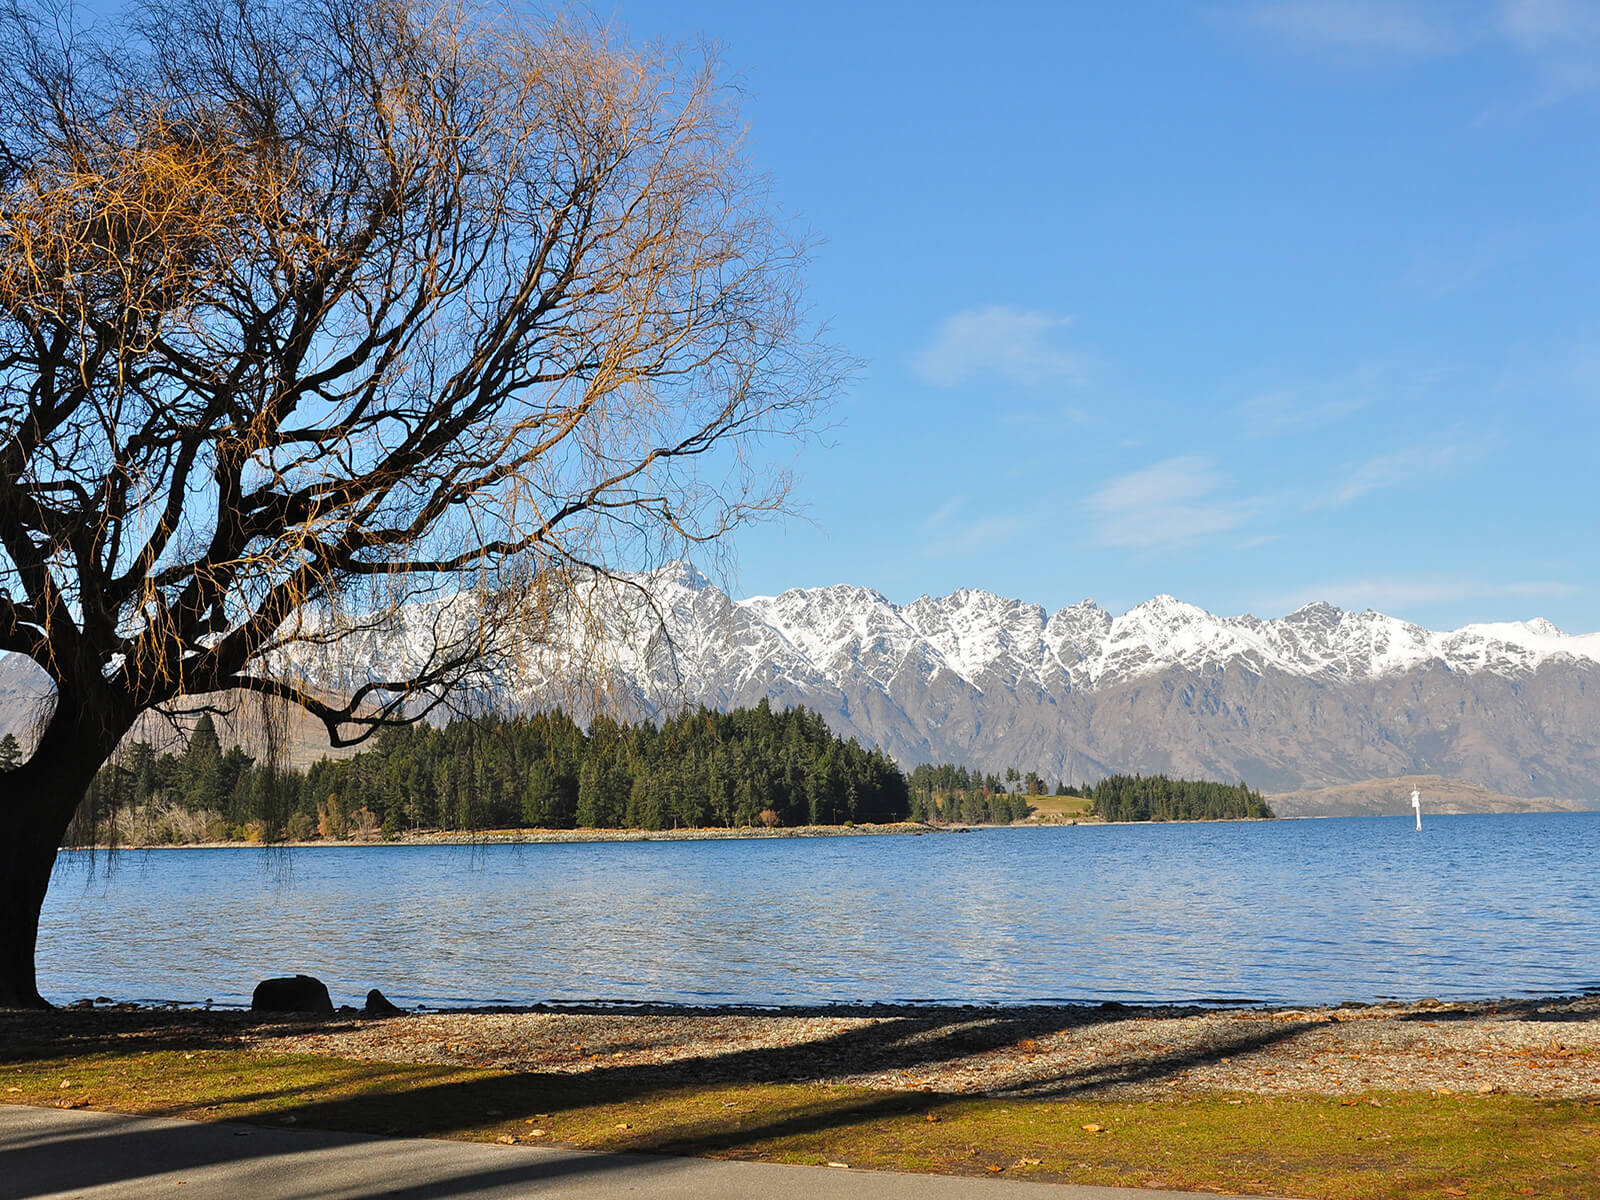 Lake Wakatipu in Queenstown, New Zealand, with snowcapped mountains looming in the background.....gorgeous!